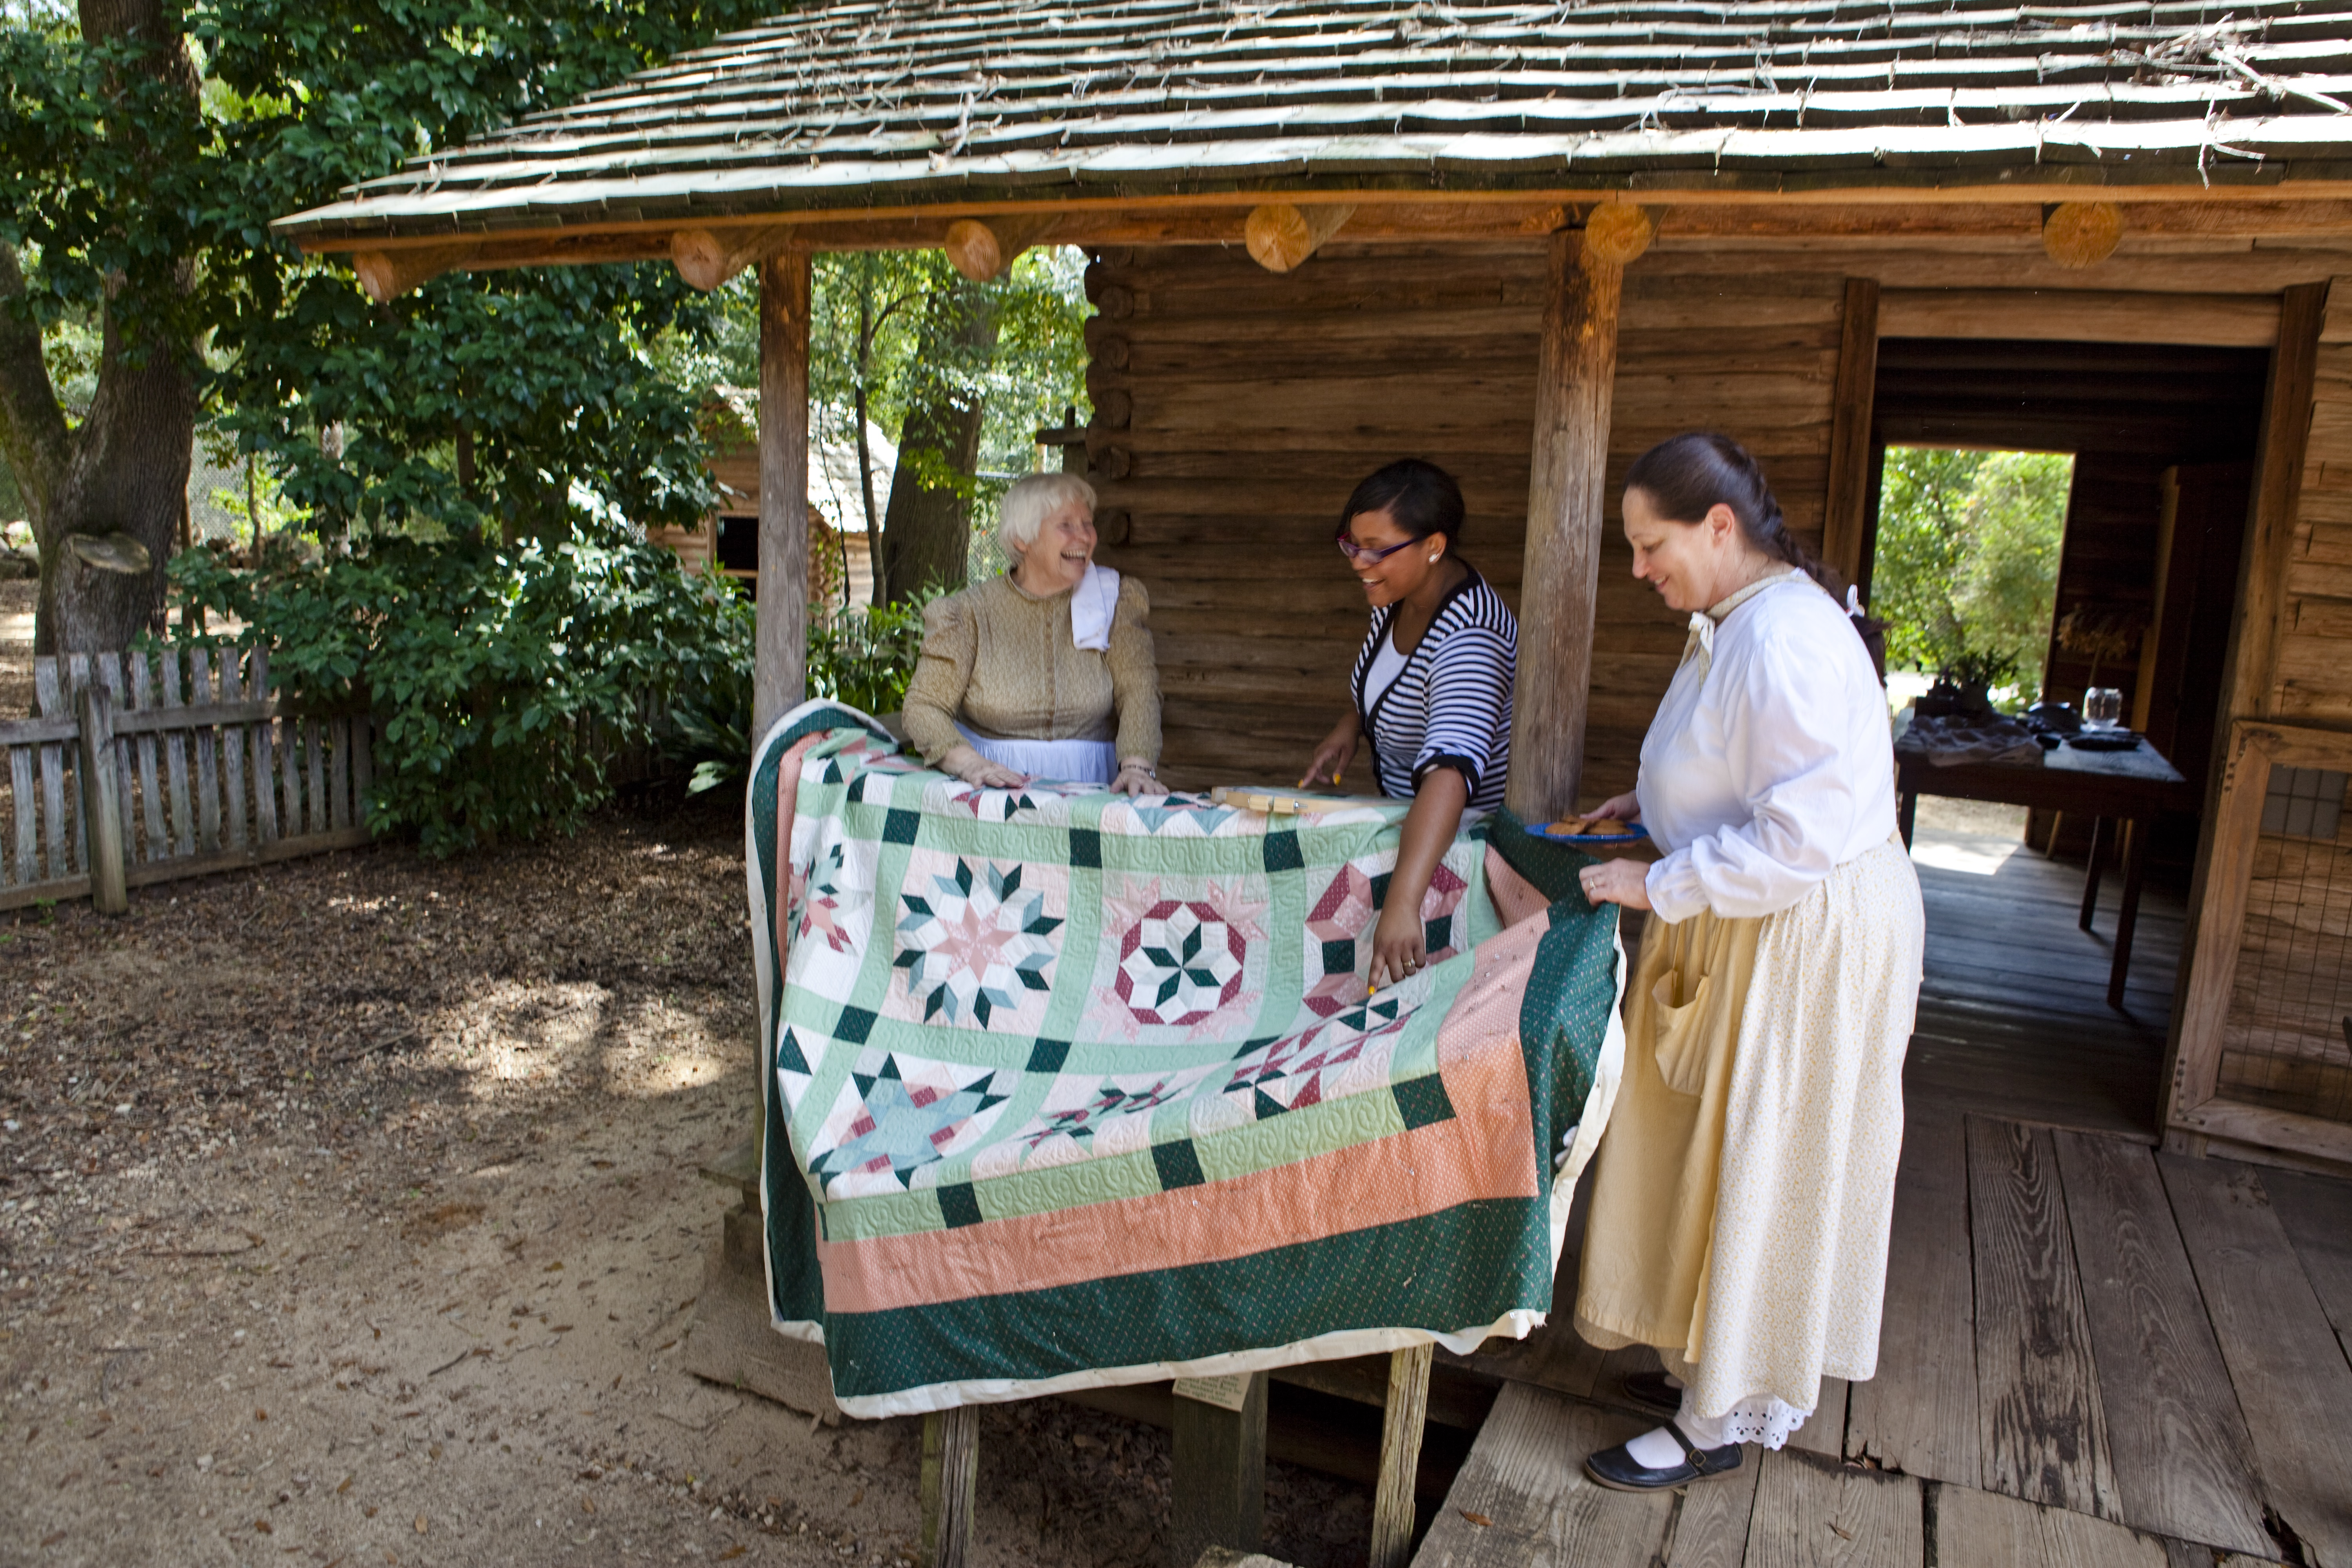 Living history interpreters show a visitor a completed quilt at the Tallahassee Museum of Natural History and Science.